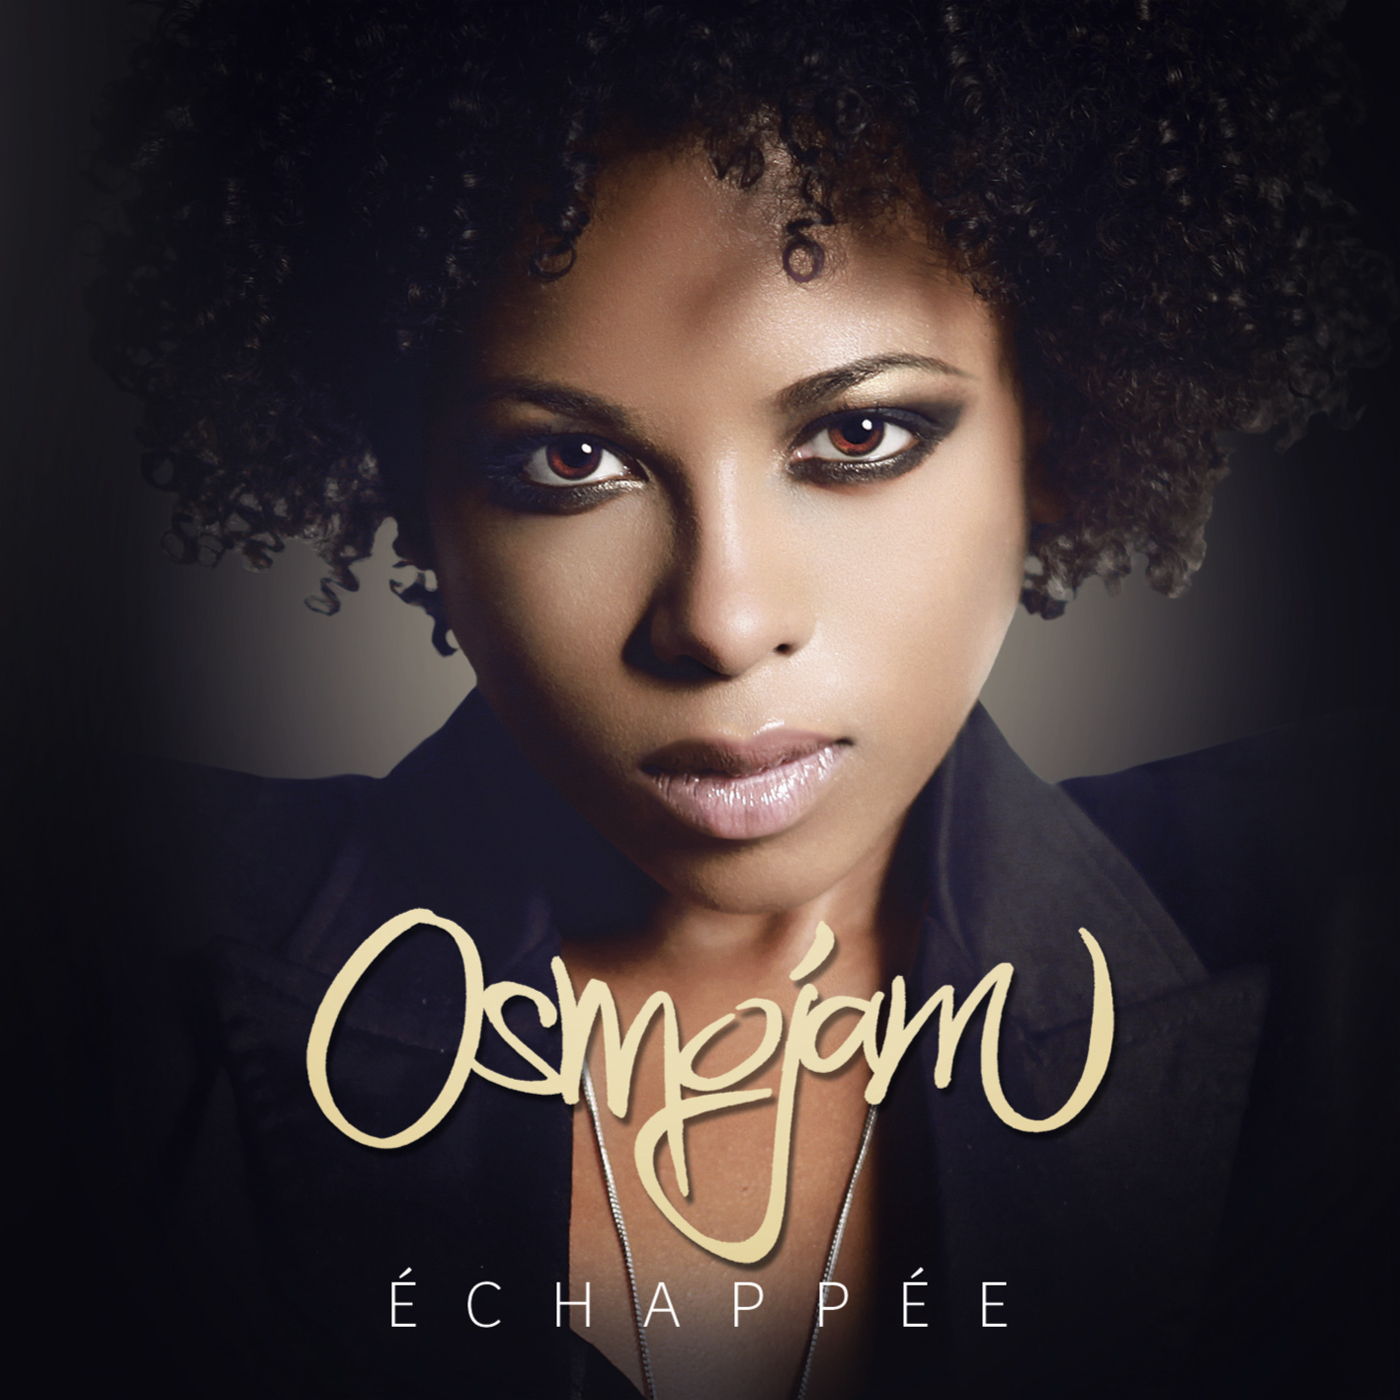 Osmojam – Échappée [Album Review]